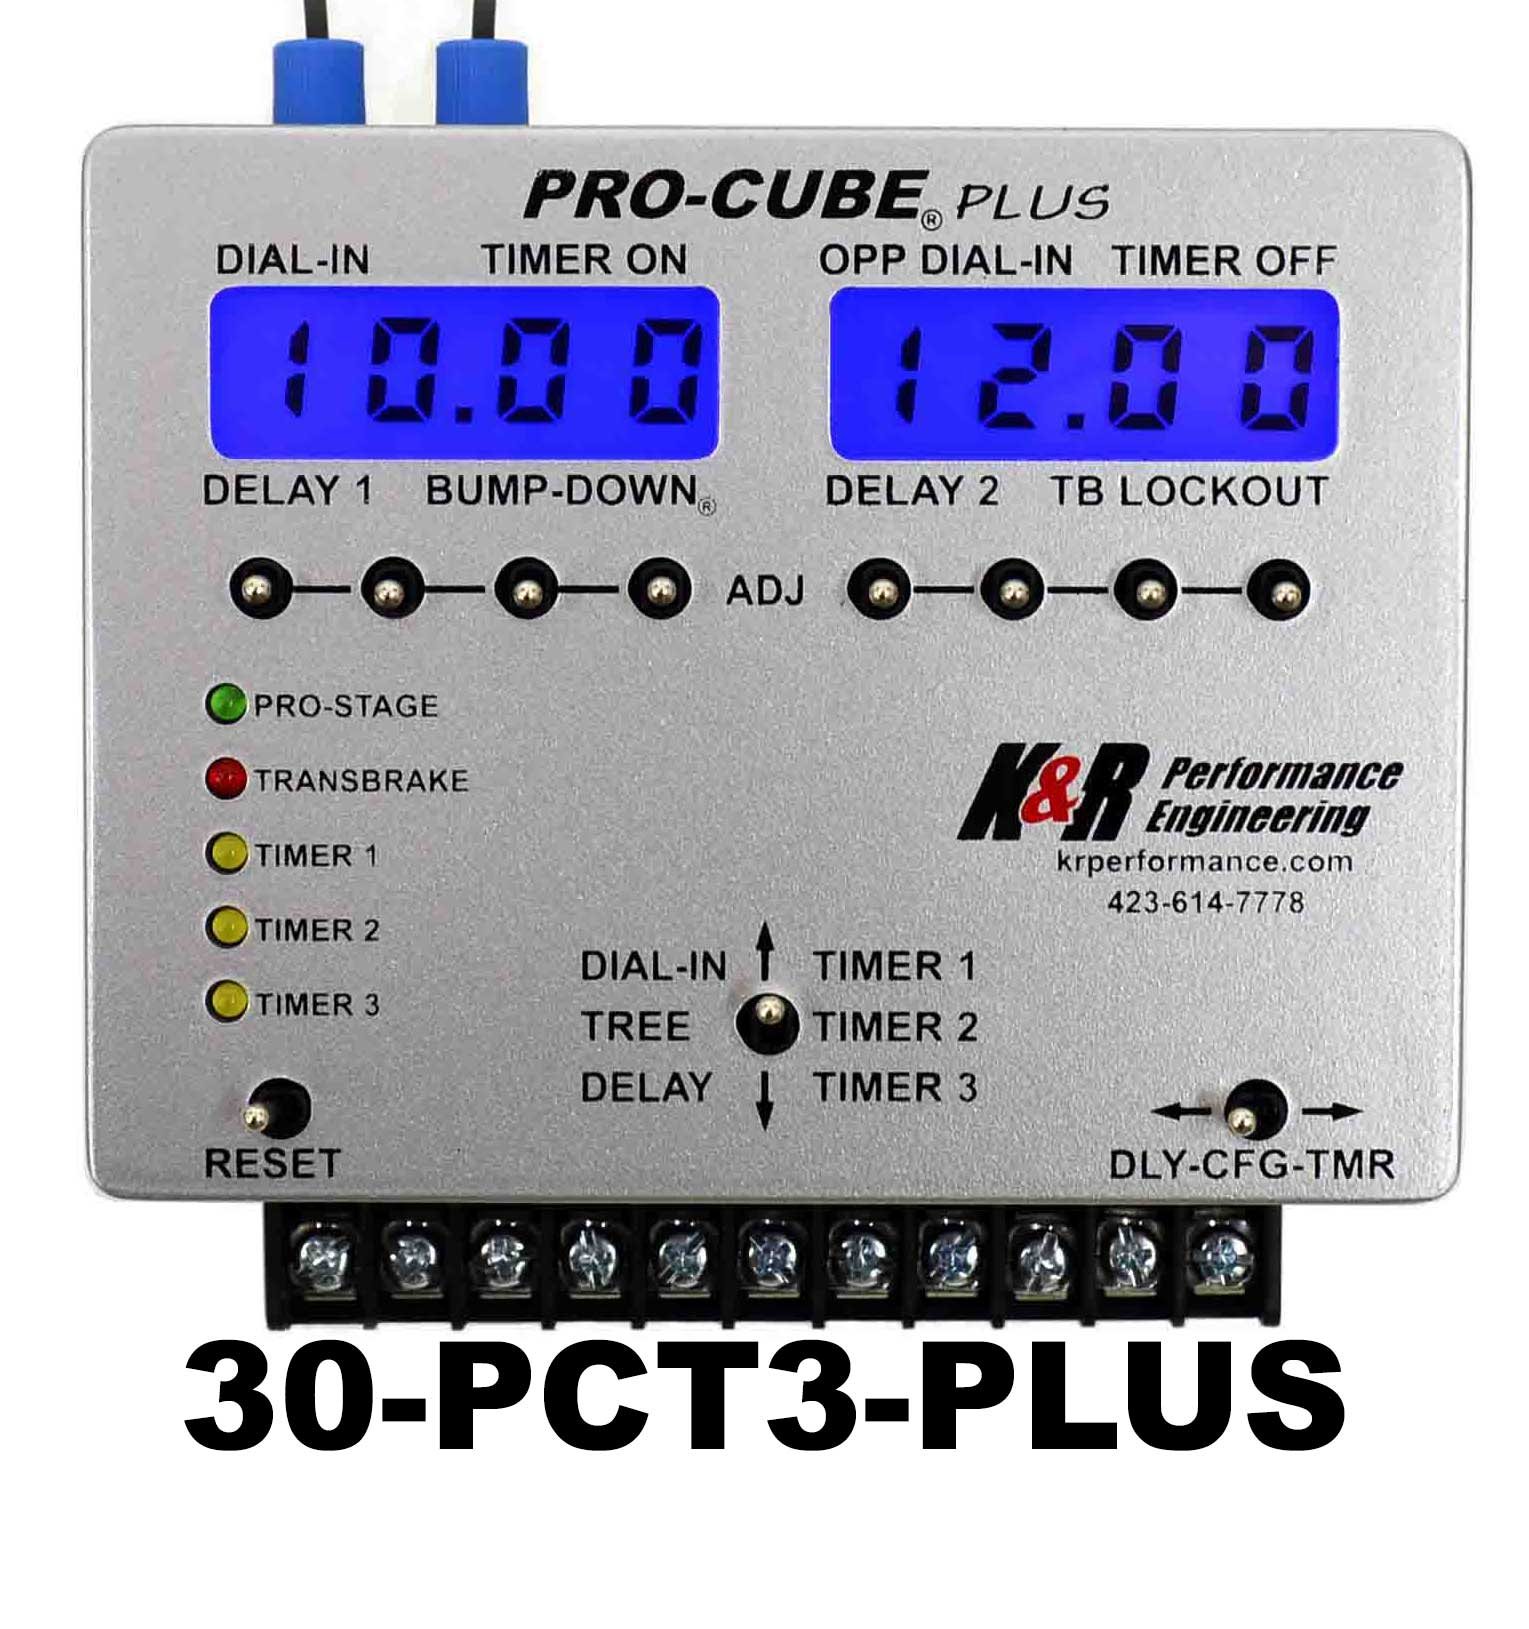 PCT3 Plus k&r pro cube k r pro cube wiring diagram at couponss.co